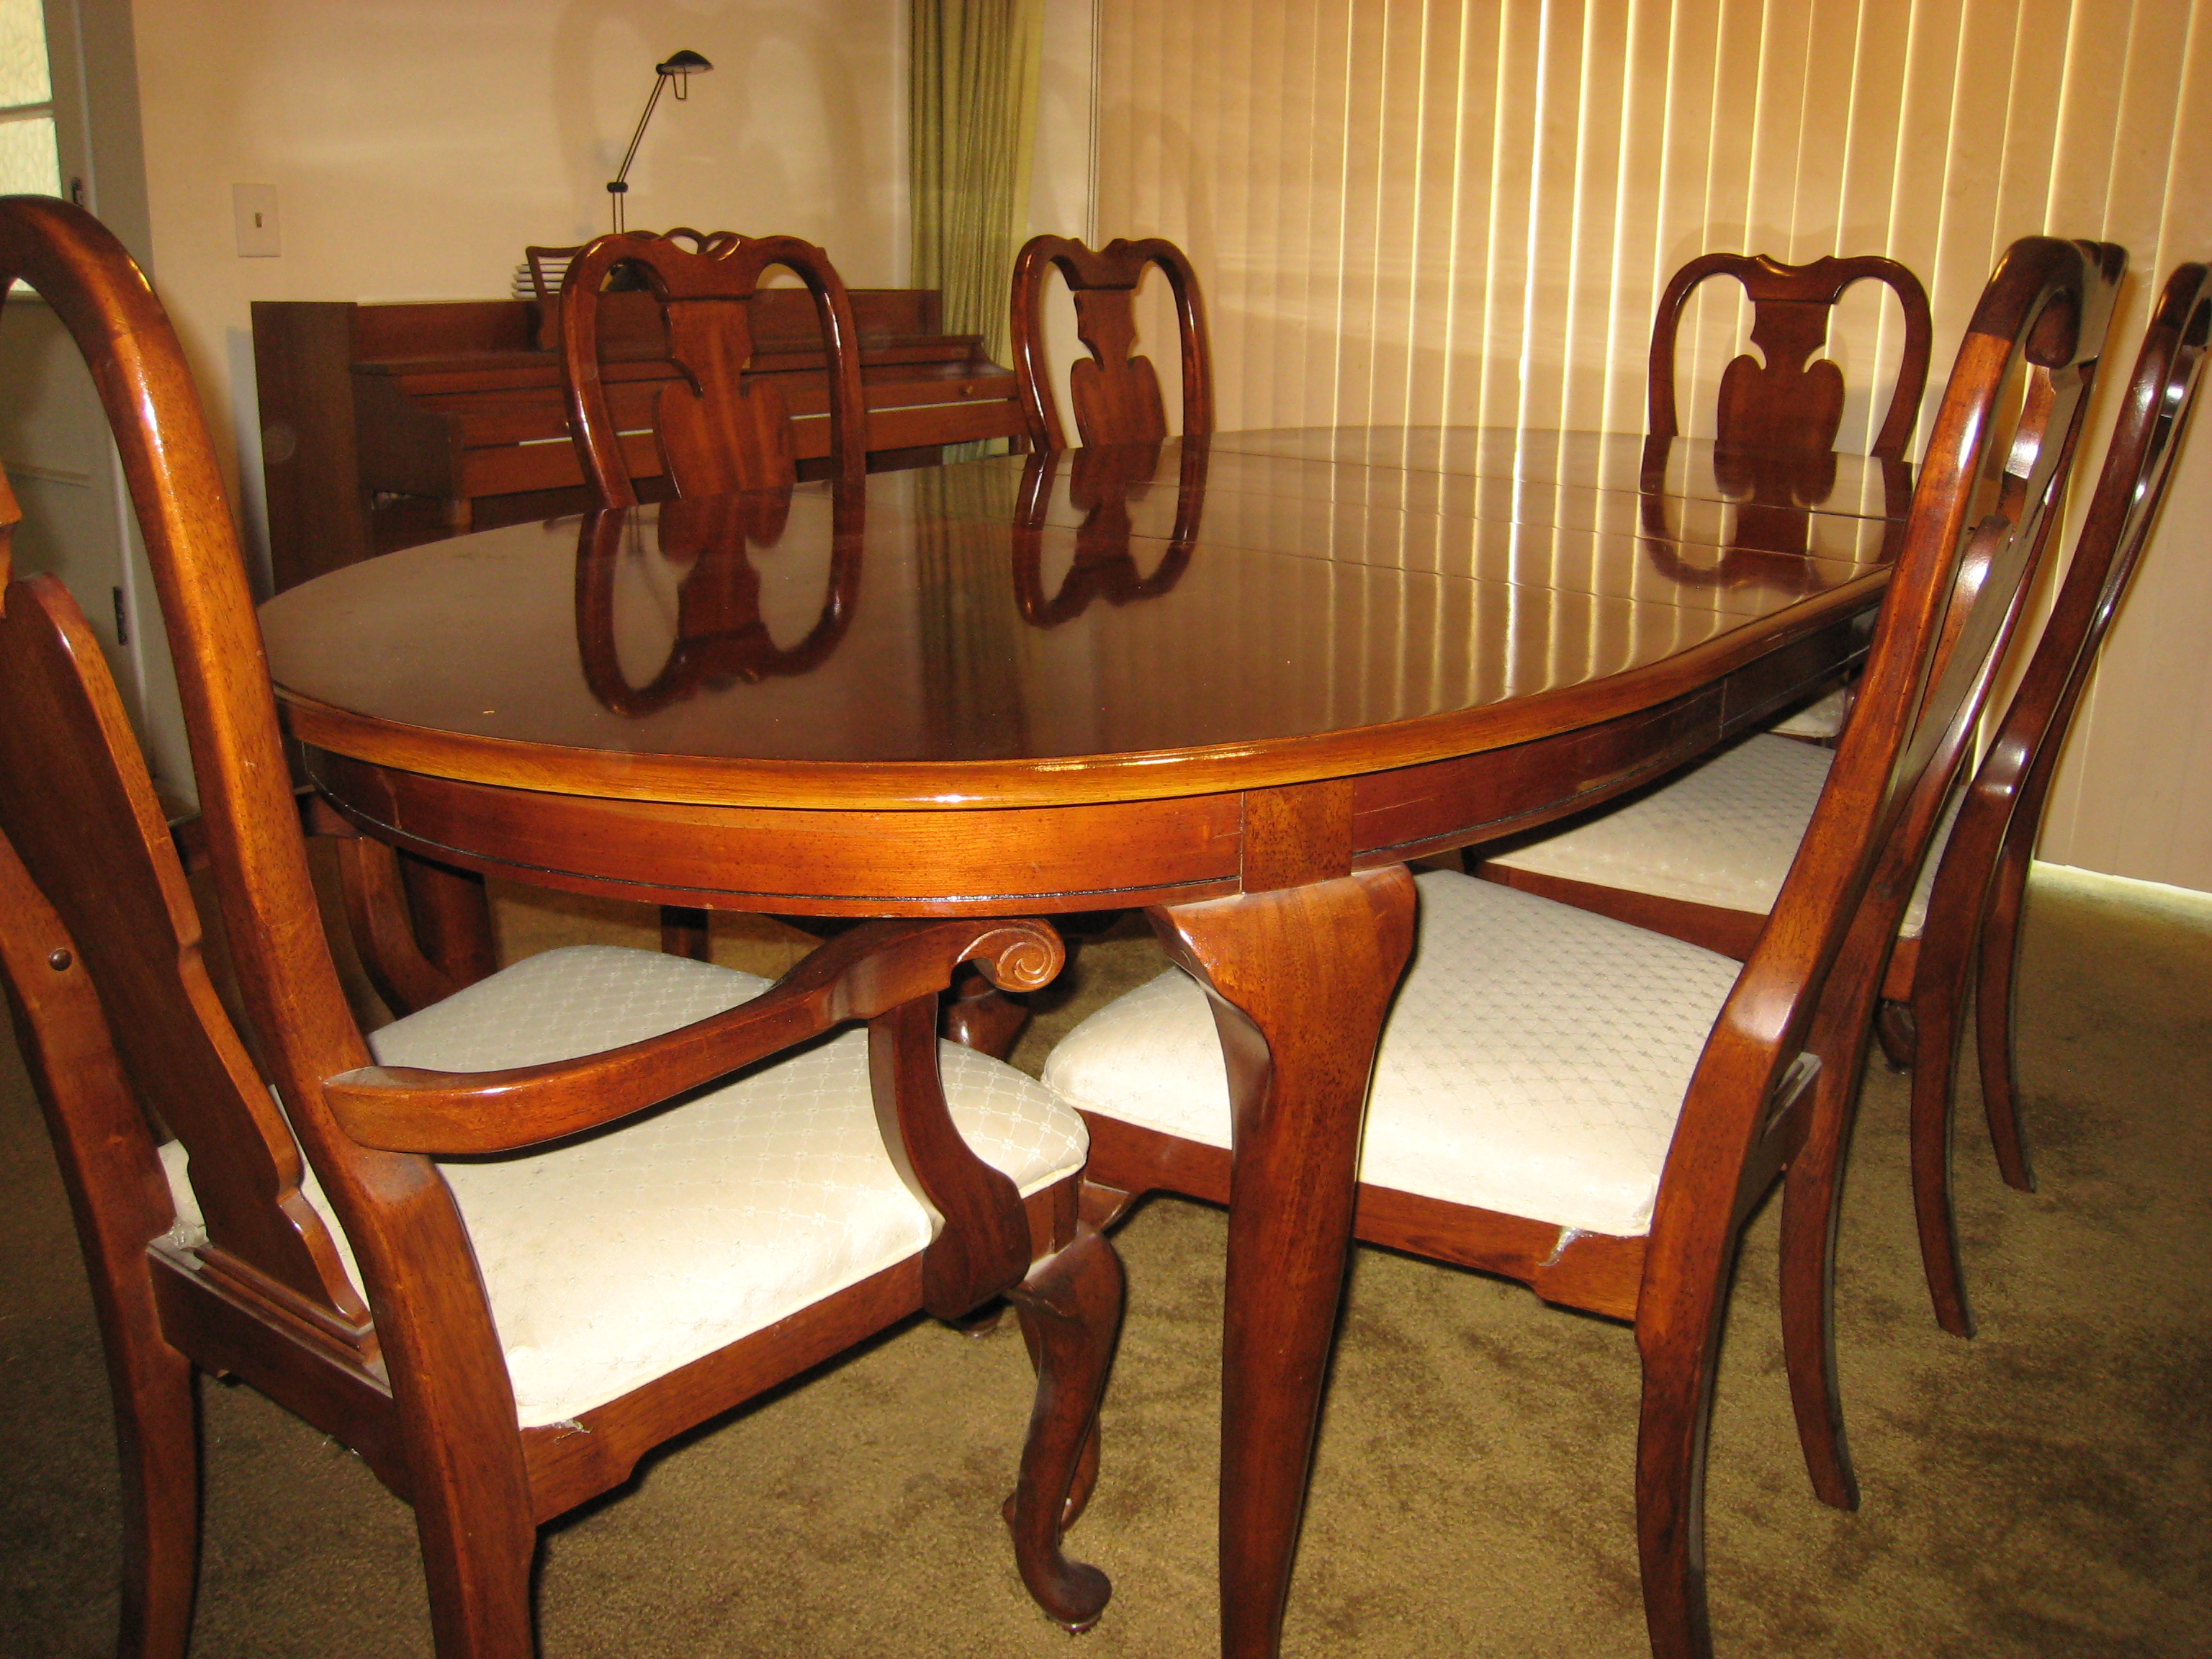 6 Dining Room Chairs Rich Mahogany Dining Table With Six Mahogany Chairs And